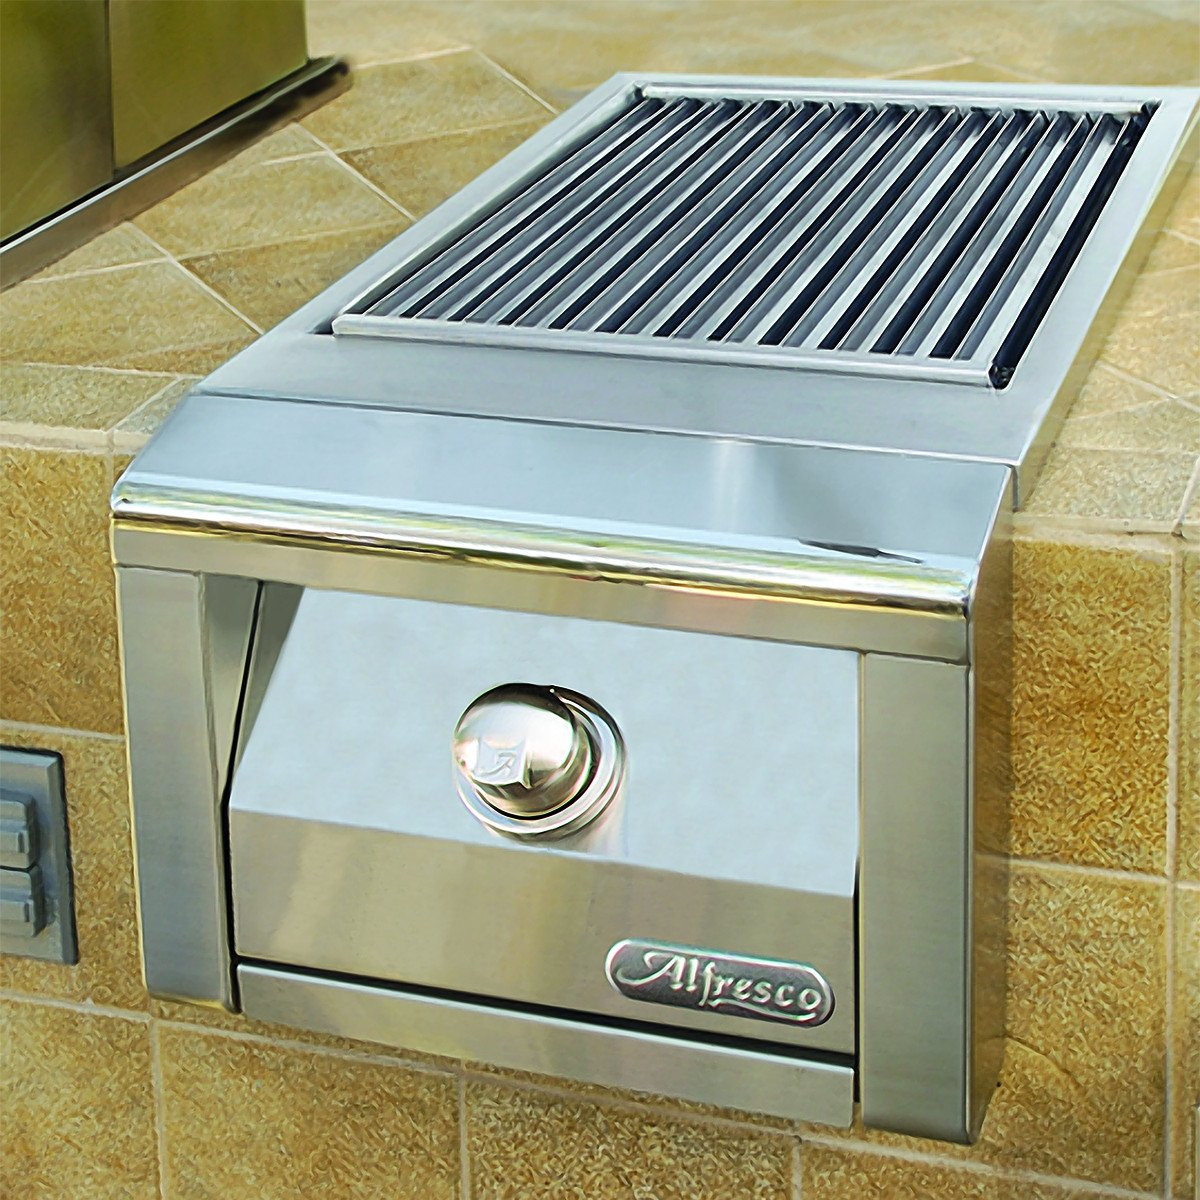 Alfresco Sear Zone Side Burner Built-In, Liquid Propane